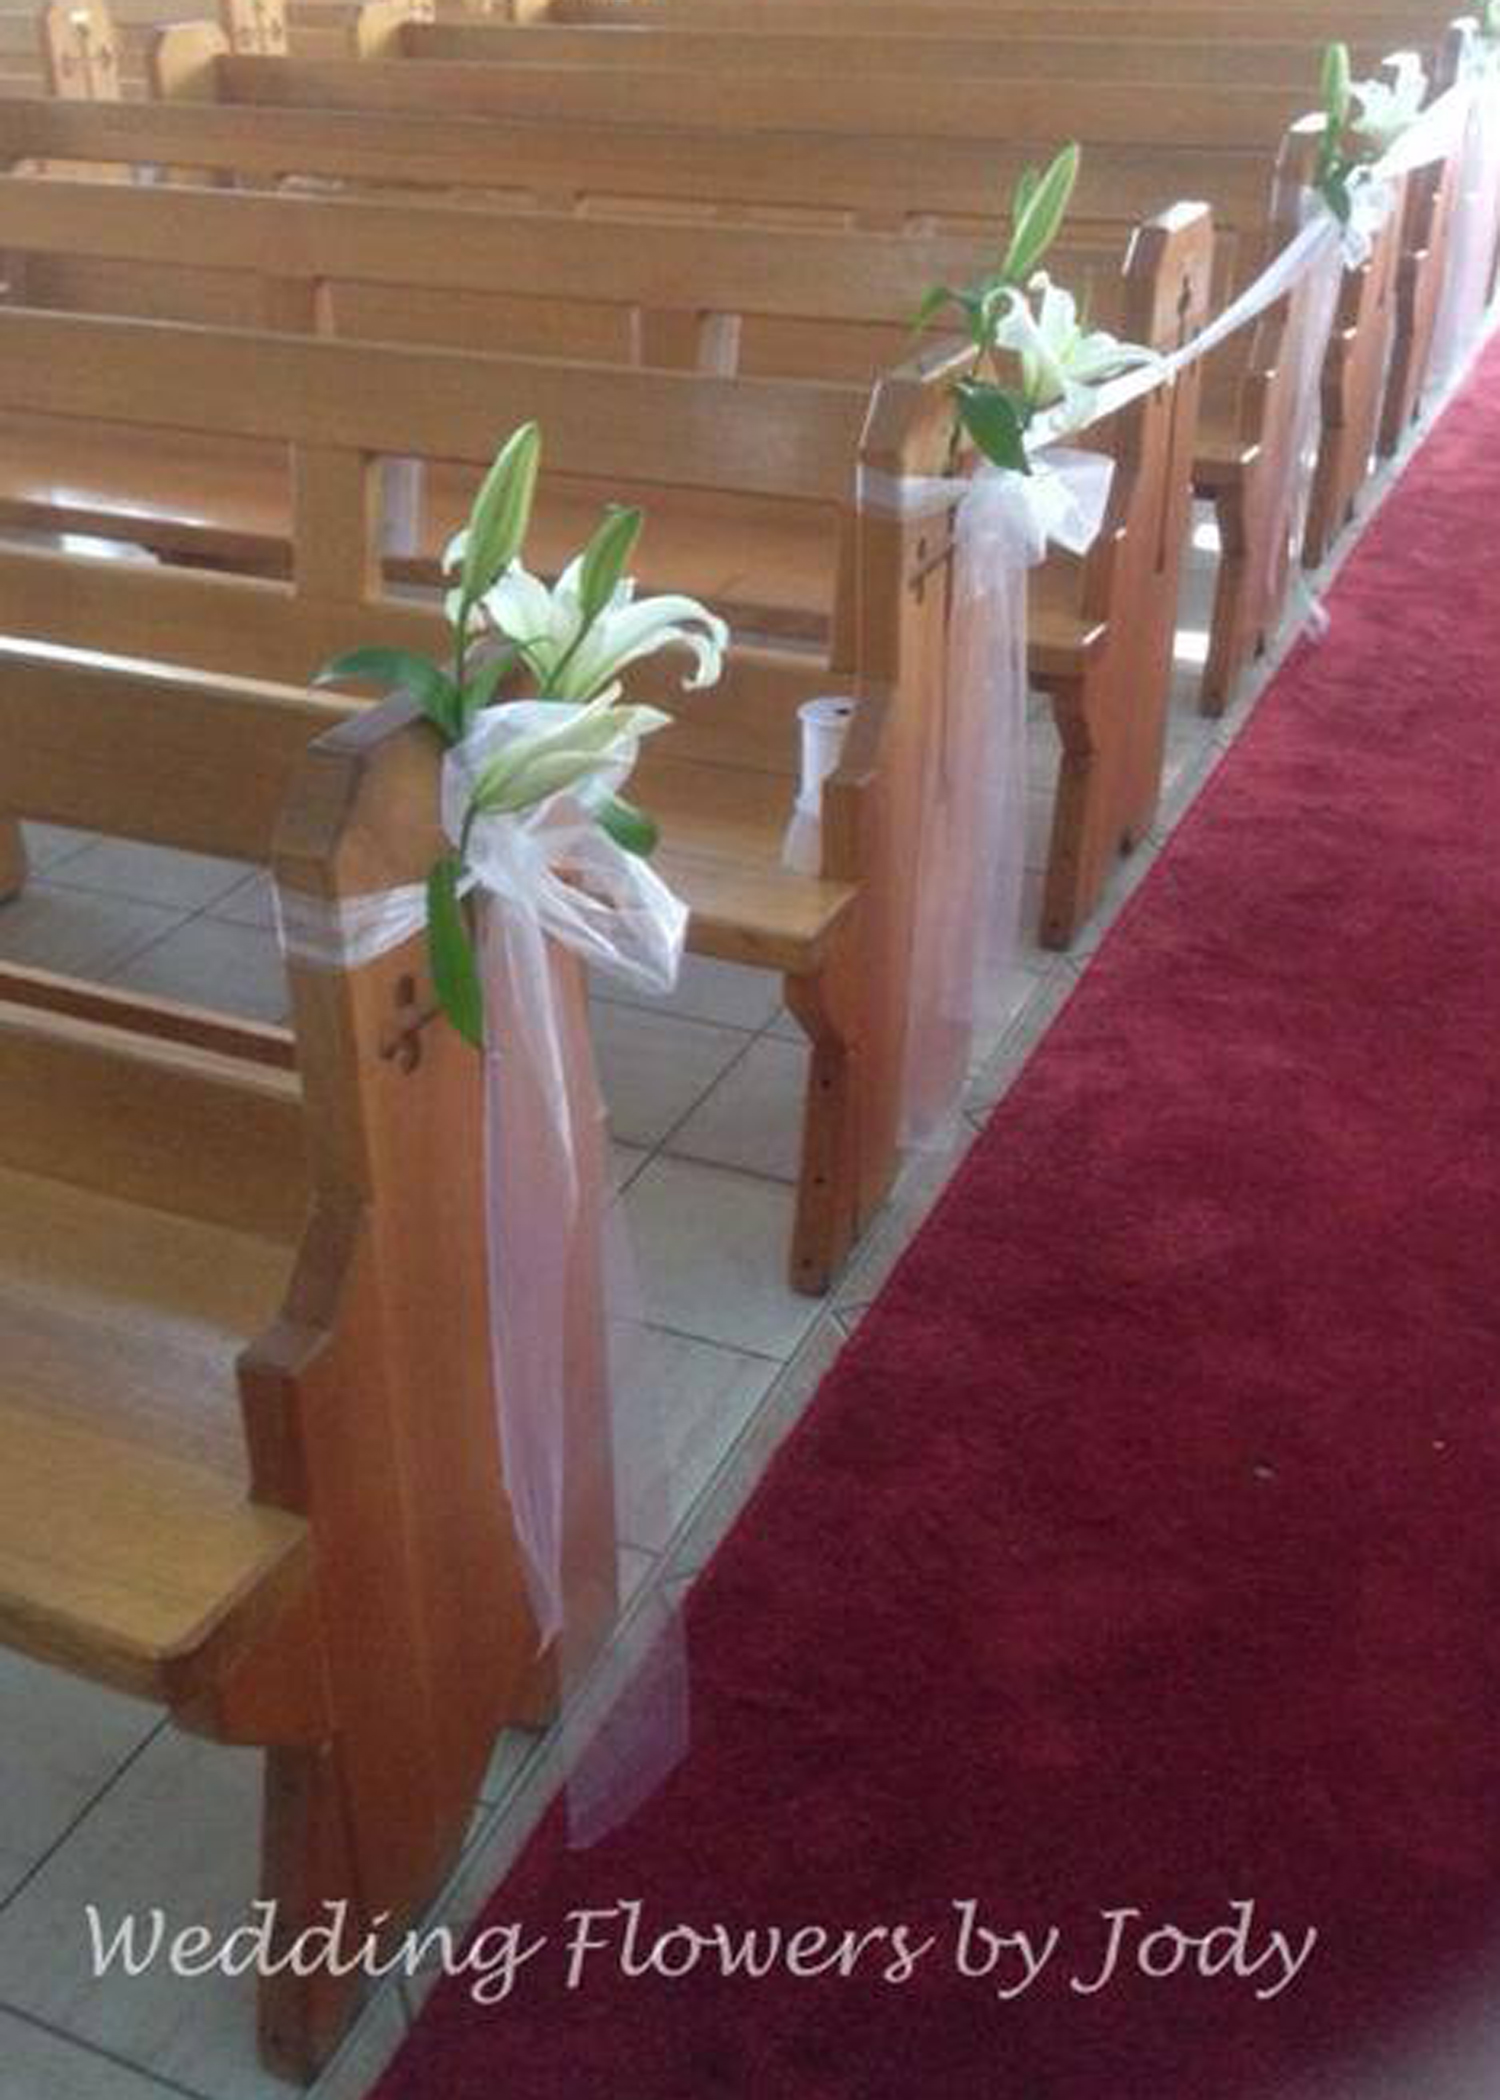 Oriental lillies decorating church pew ends